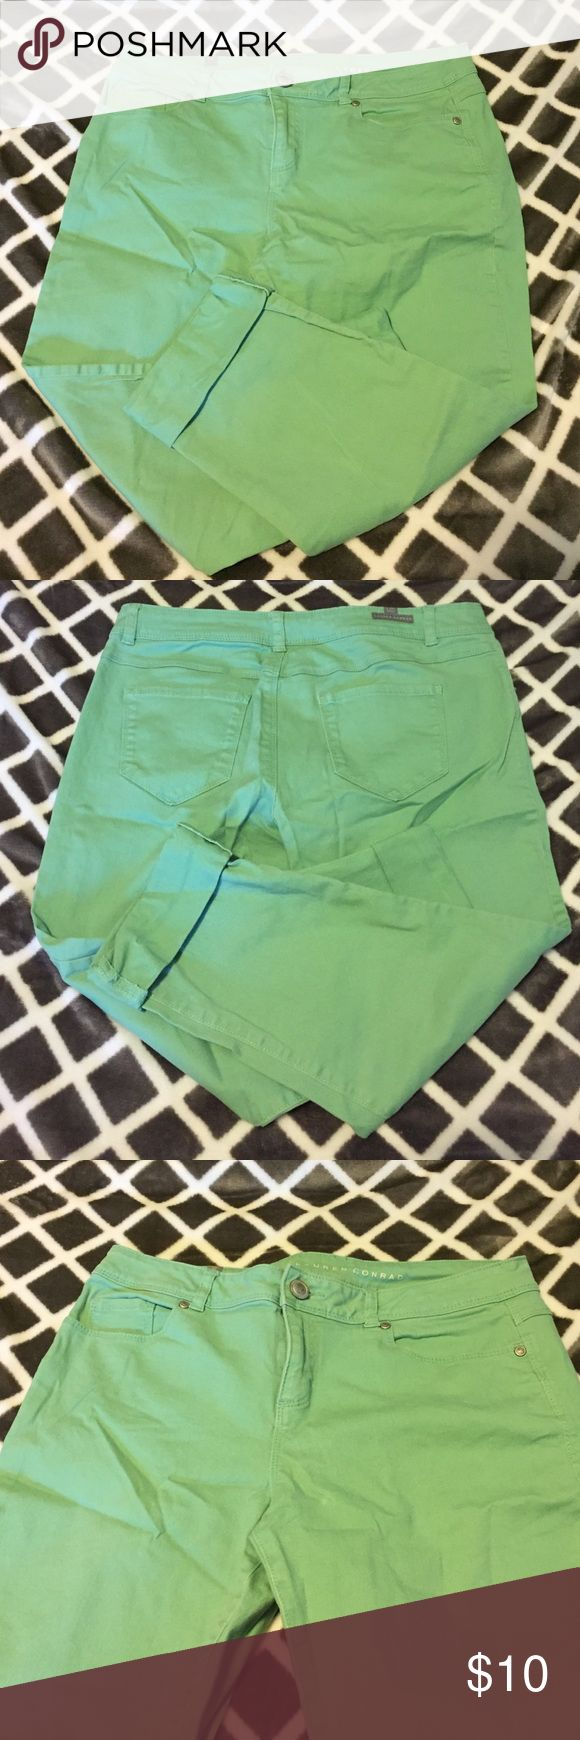 Mint Green Capris Skinny capris. Mint green color. Never worn!! Nothing wrong with them, simply doesn't fit me anymore:) LC Lauren Conrad Jeans Ankle & Cropped